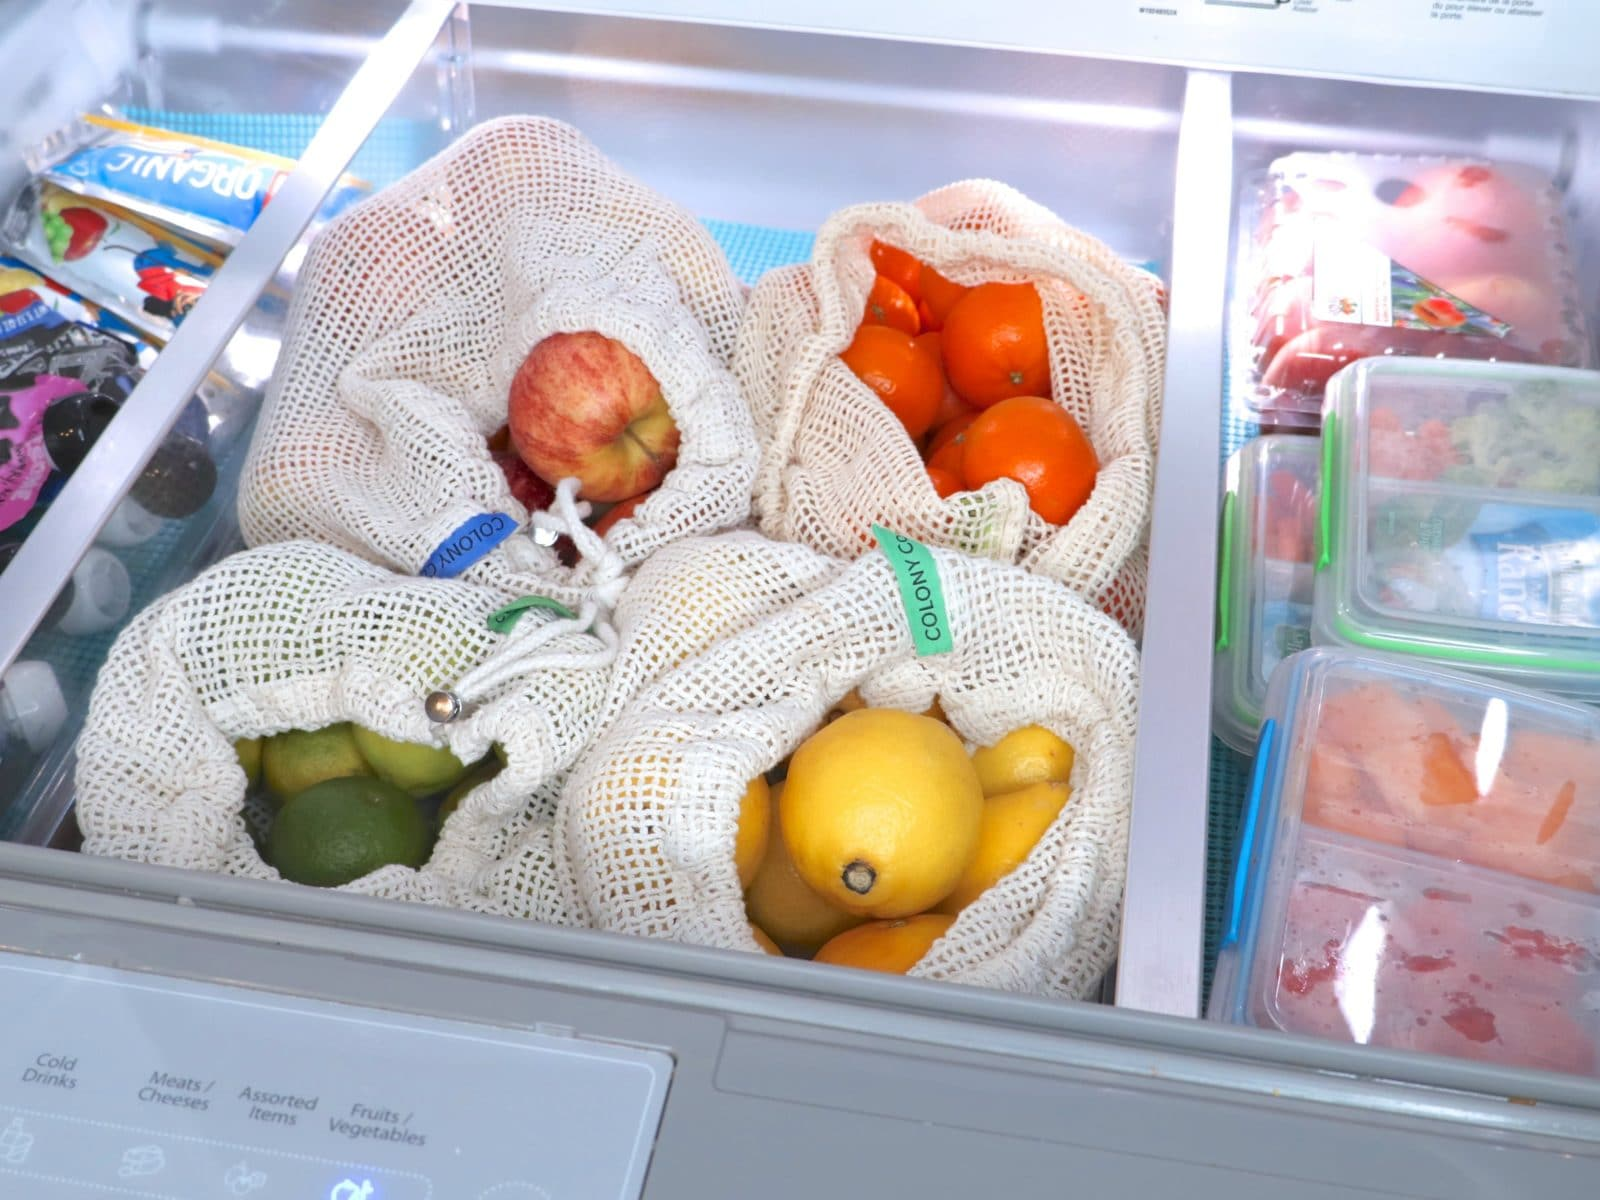 refrigerator produce bags